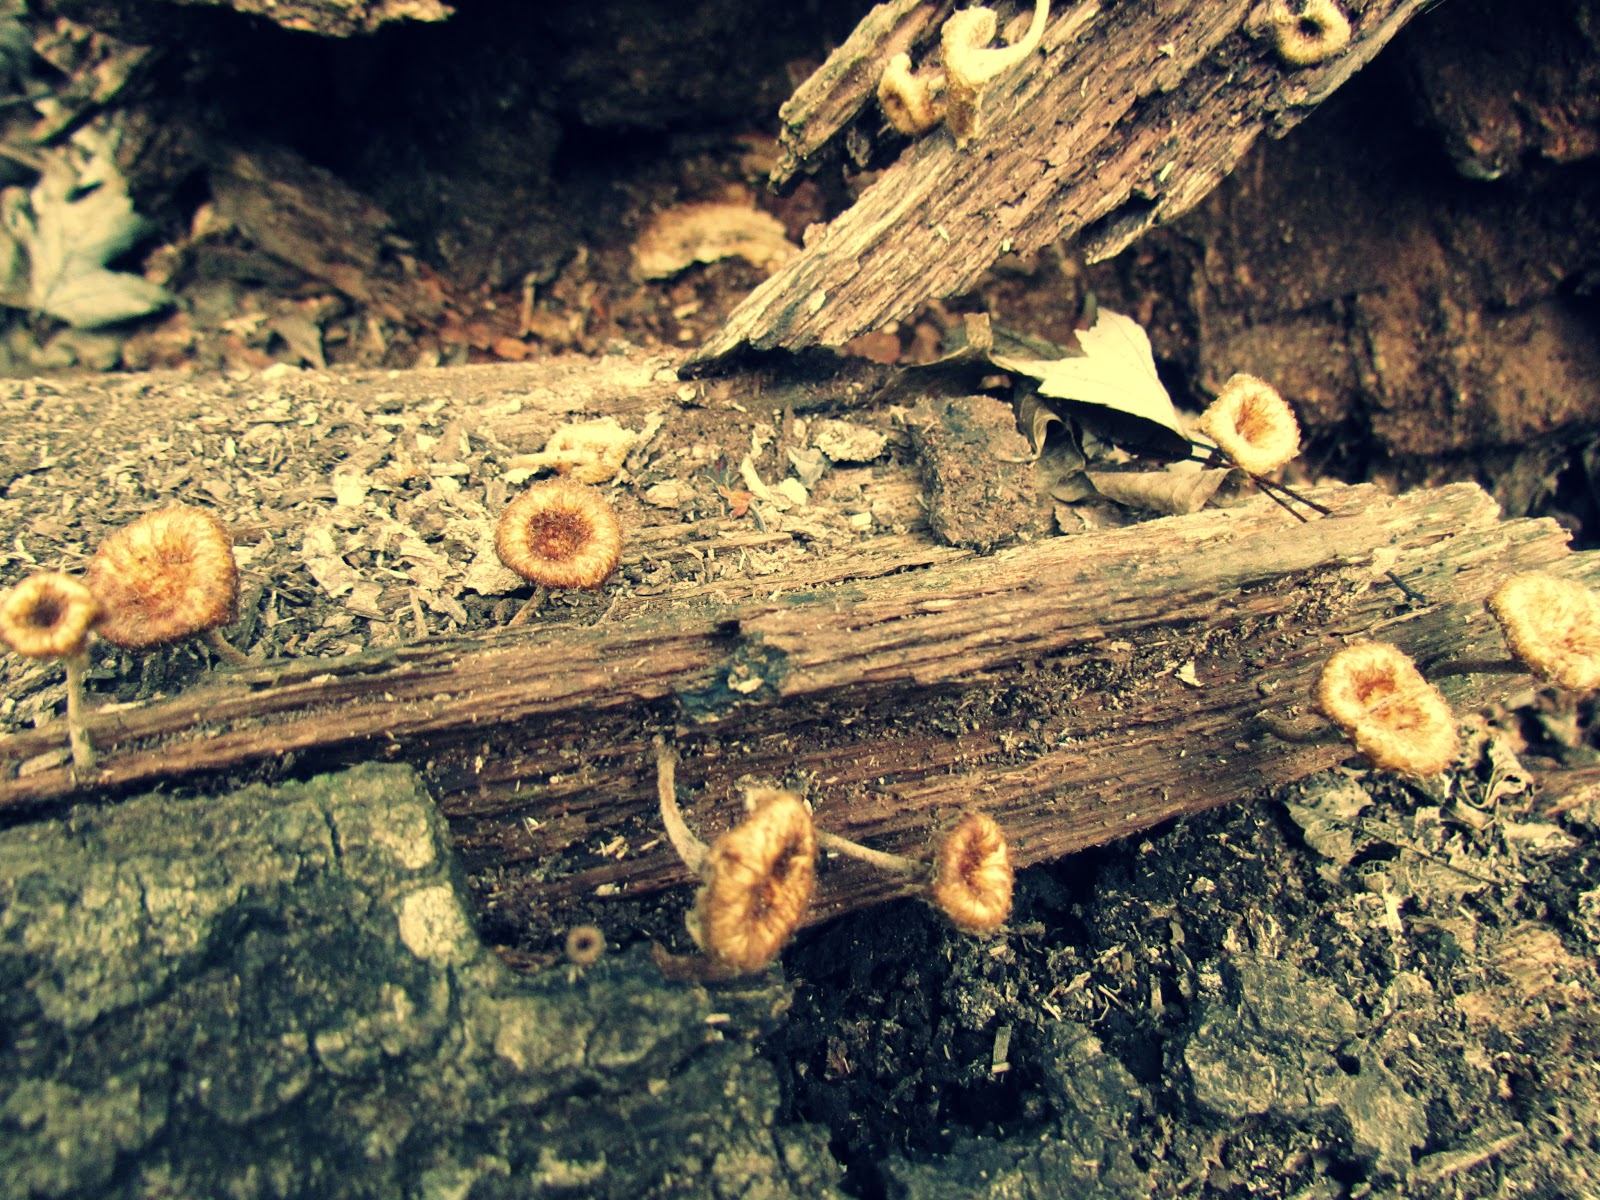 Mushrooms and Tree Bark Growing Wildly Edible Mushrooms for Foraging